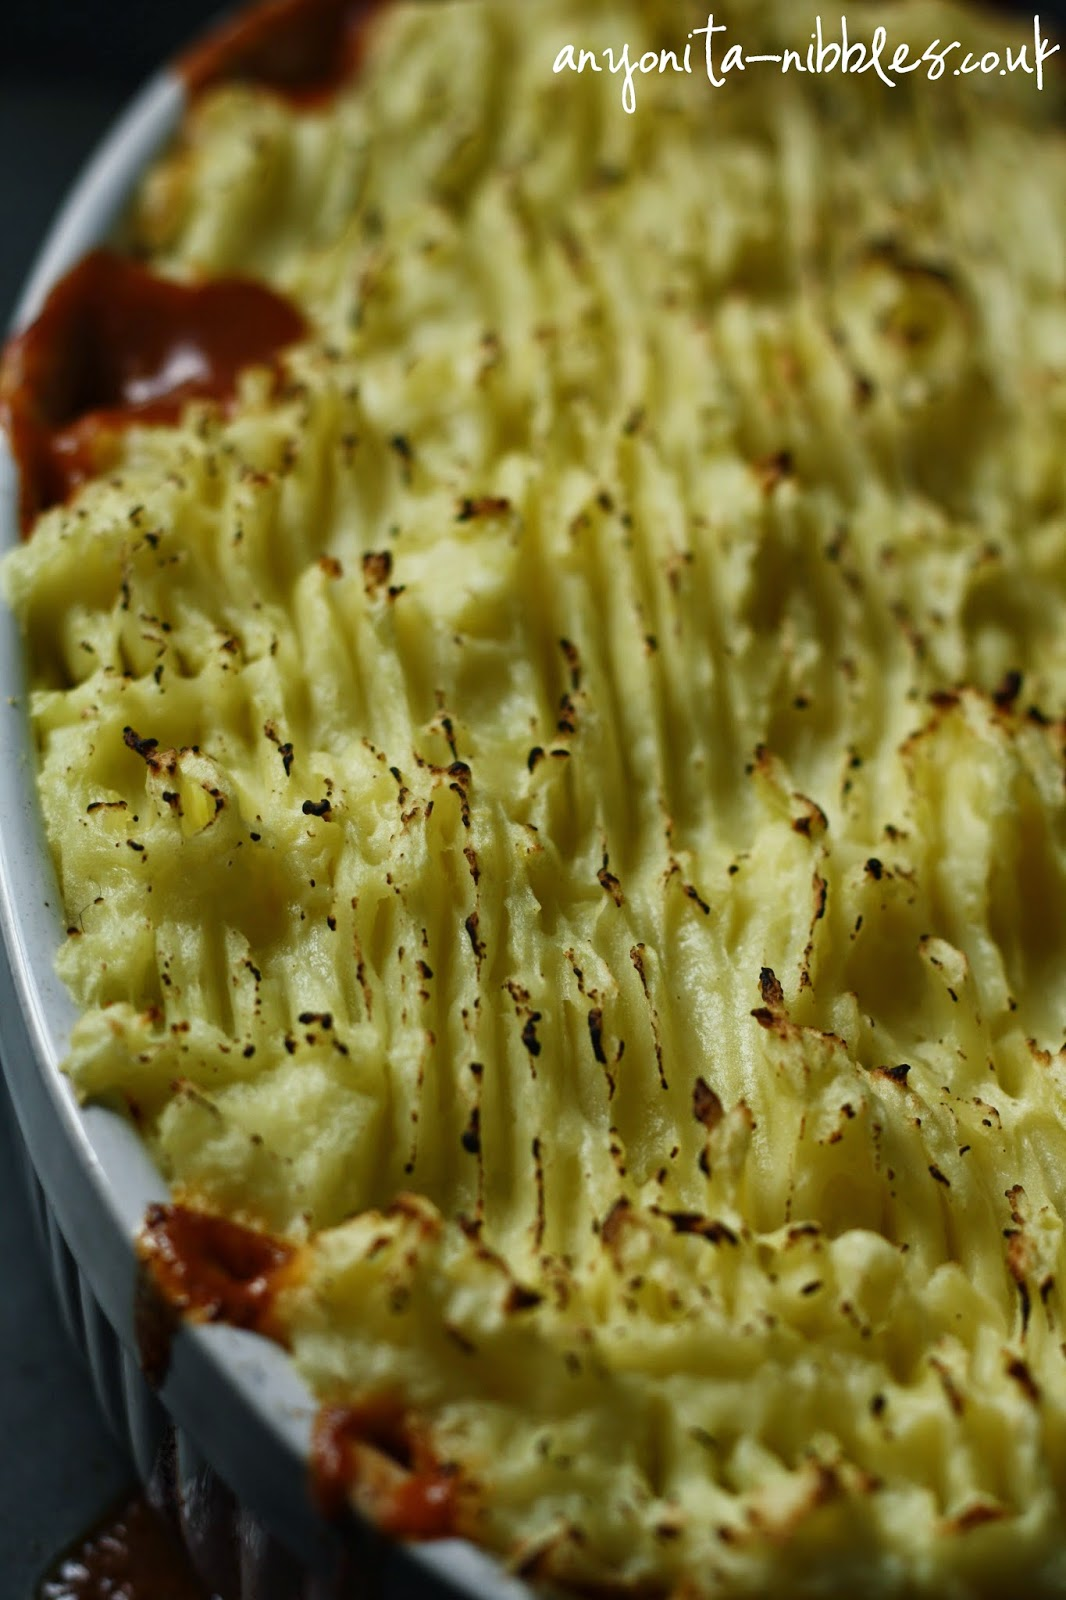 Mashed potatoes on a cottage pie from anyonita-nibbles.co.uk